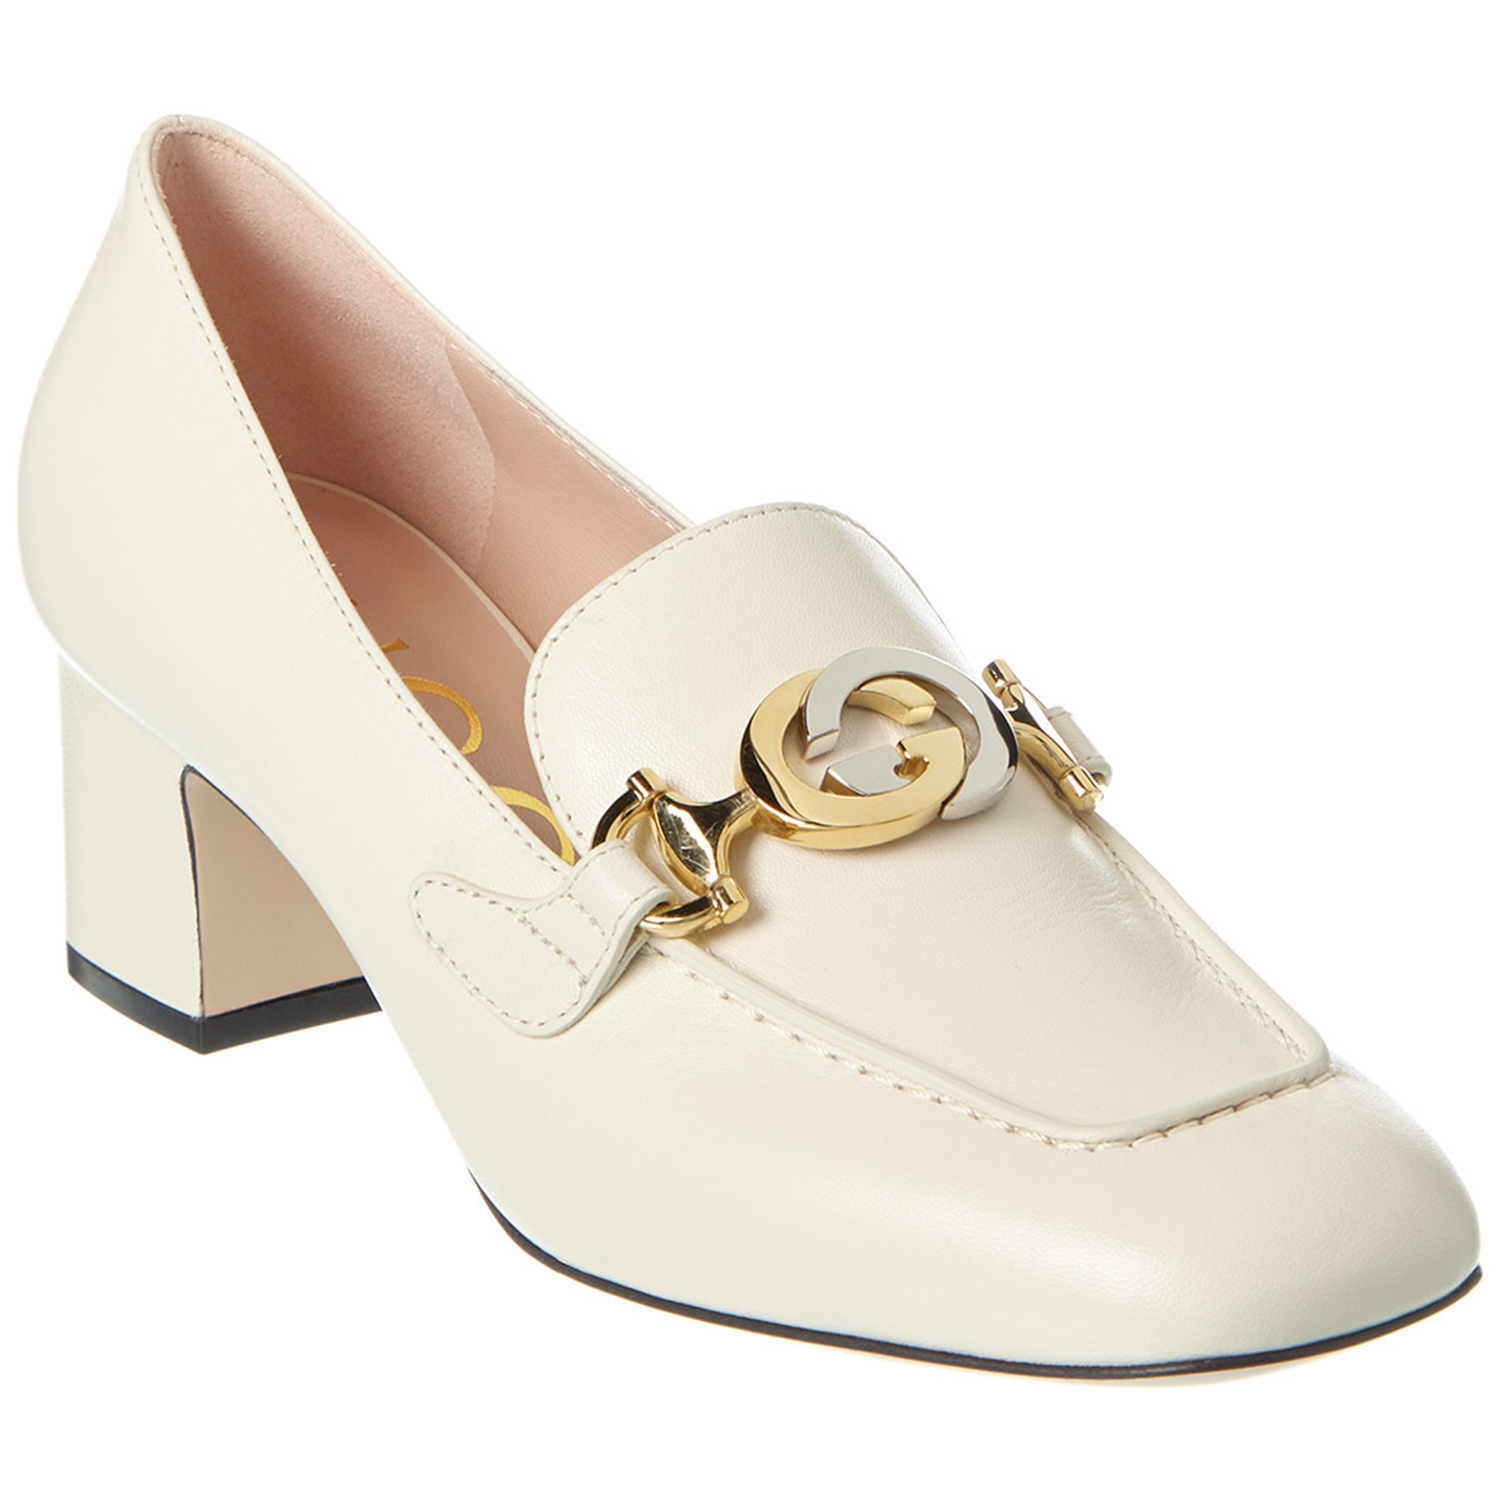 Gucci Zumi Mid-Heel Leather Loafer